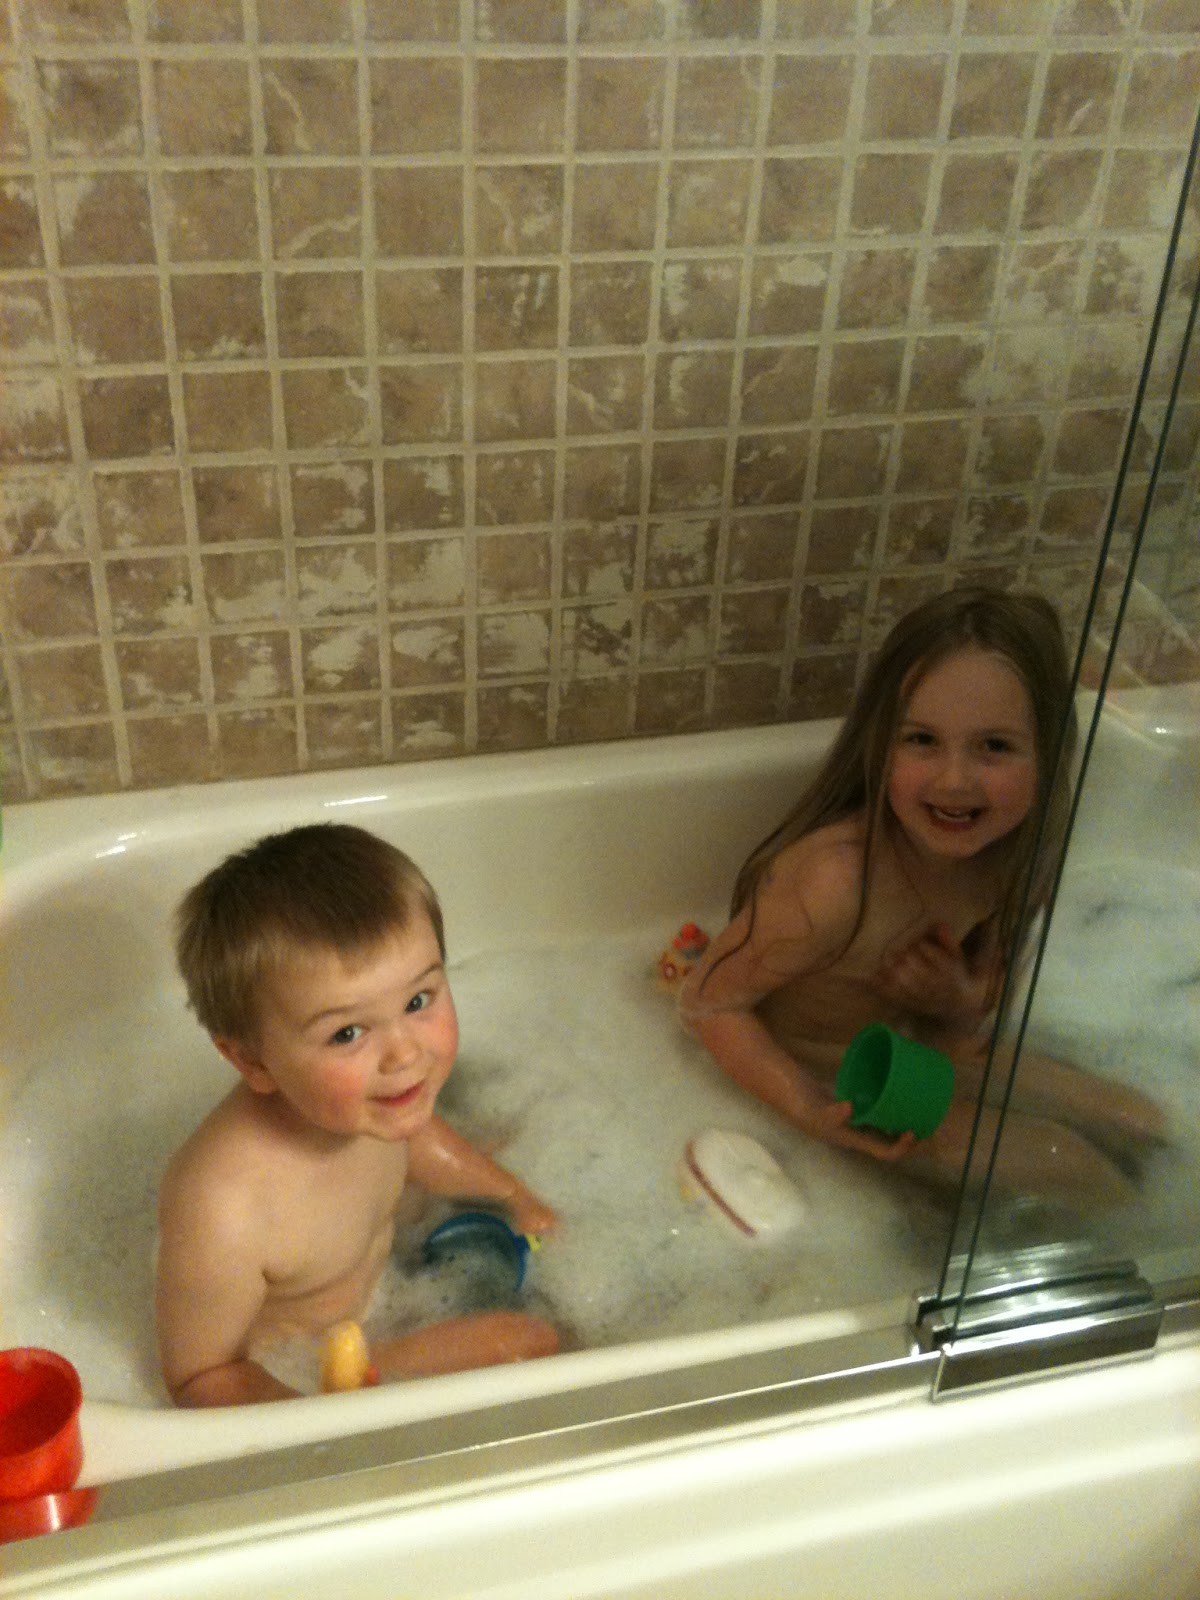 Big Sister, Middle Mister & Baby Sister: Bubble bath and park